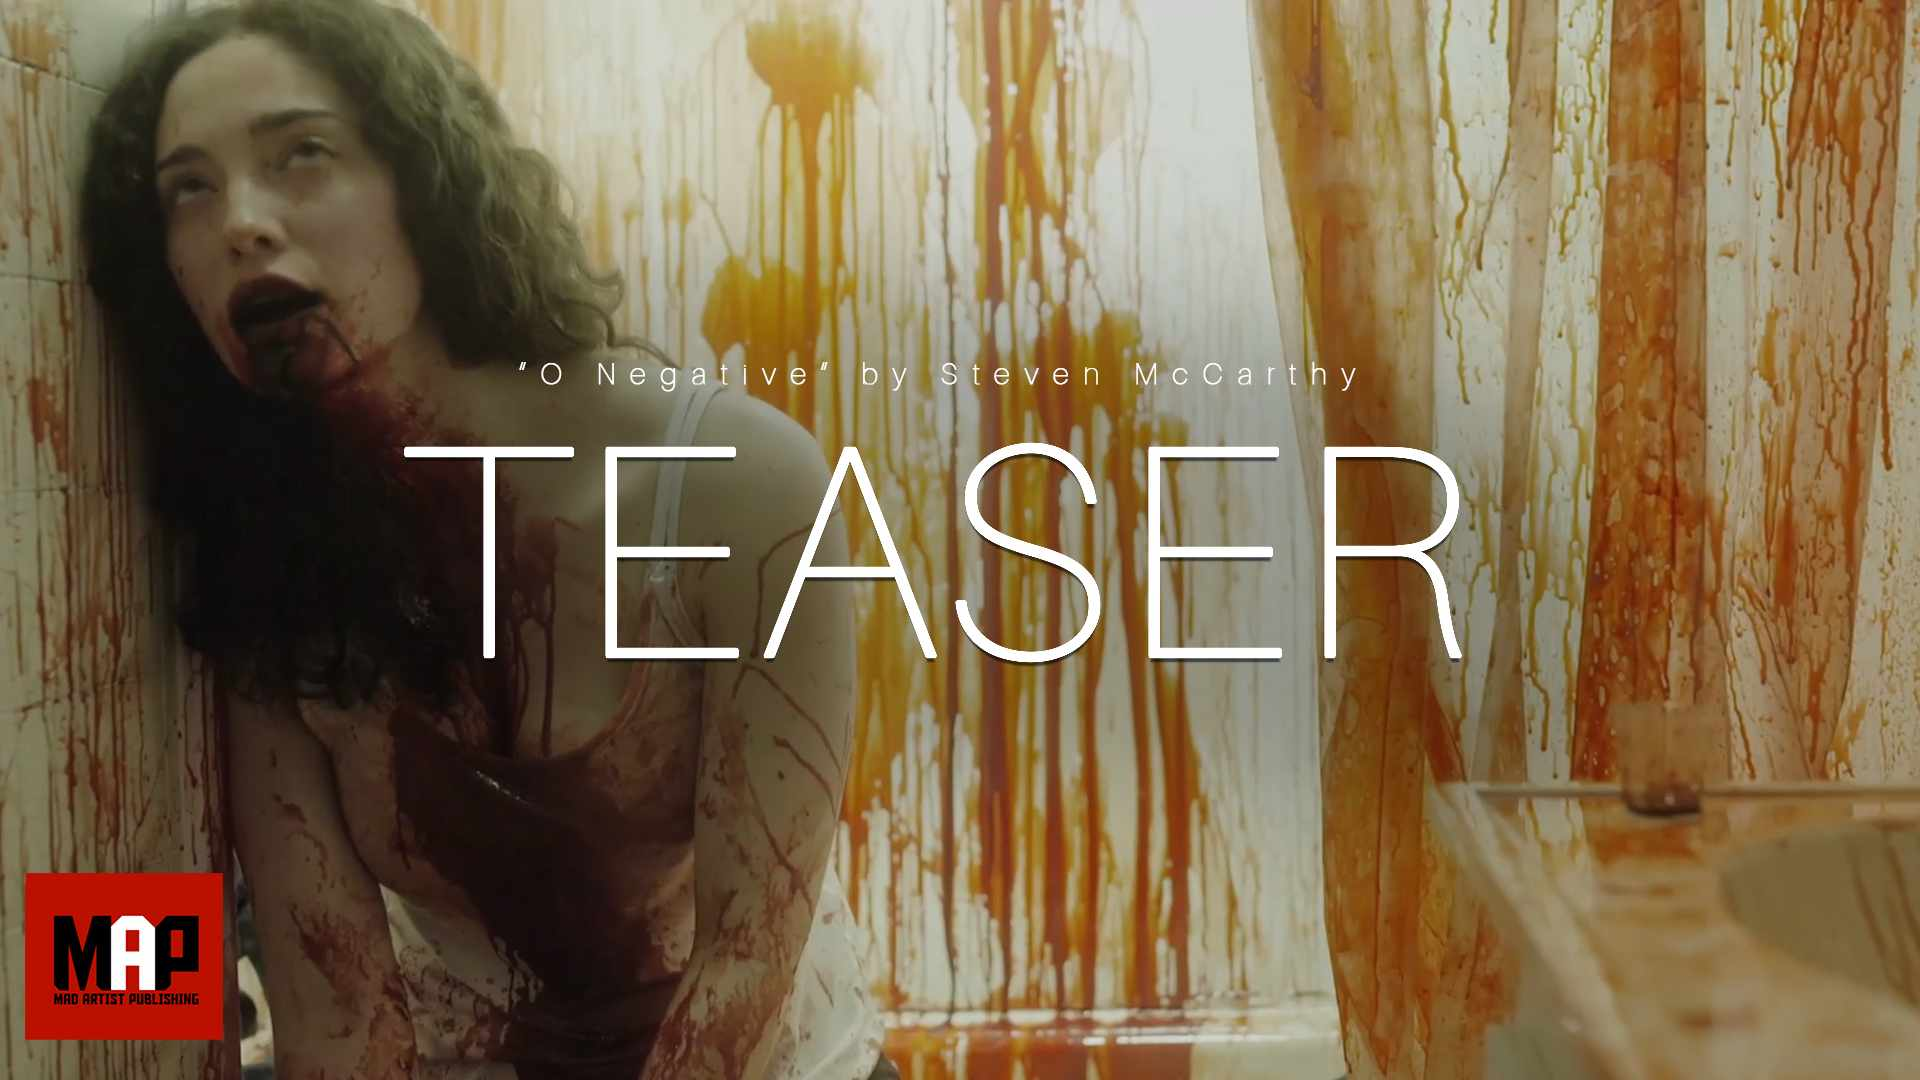 TEASER Trailer | Award Winning Short Horror Film ** O NEGATIVE ** by Steven McCarthy & Team